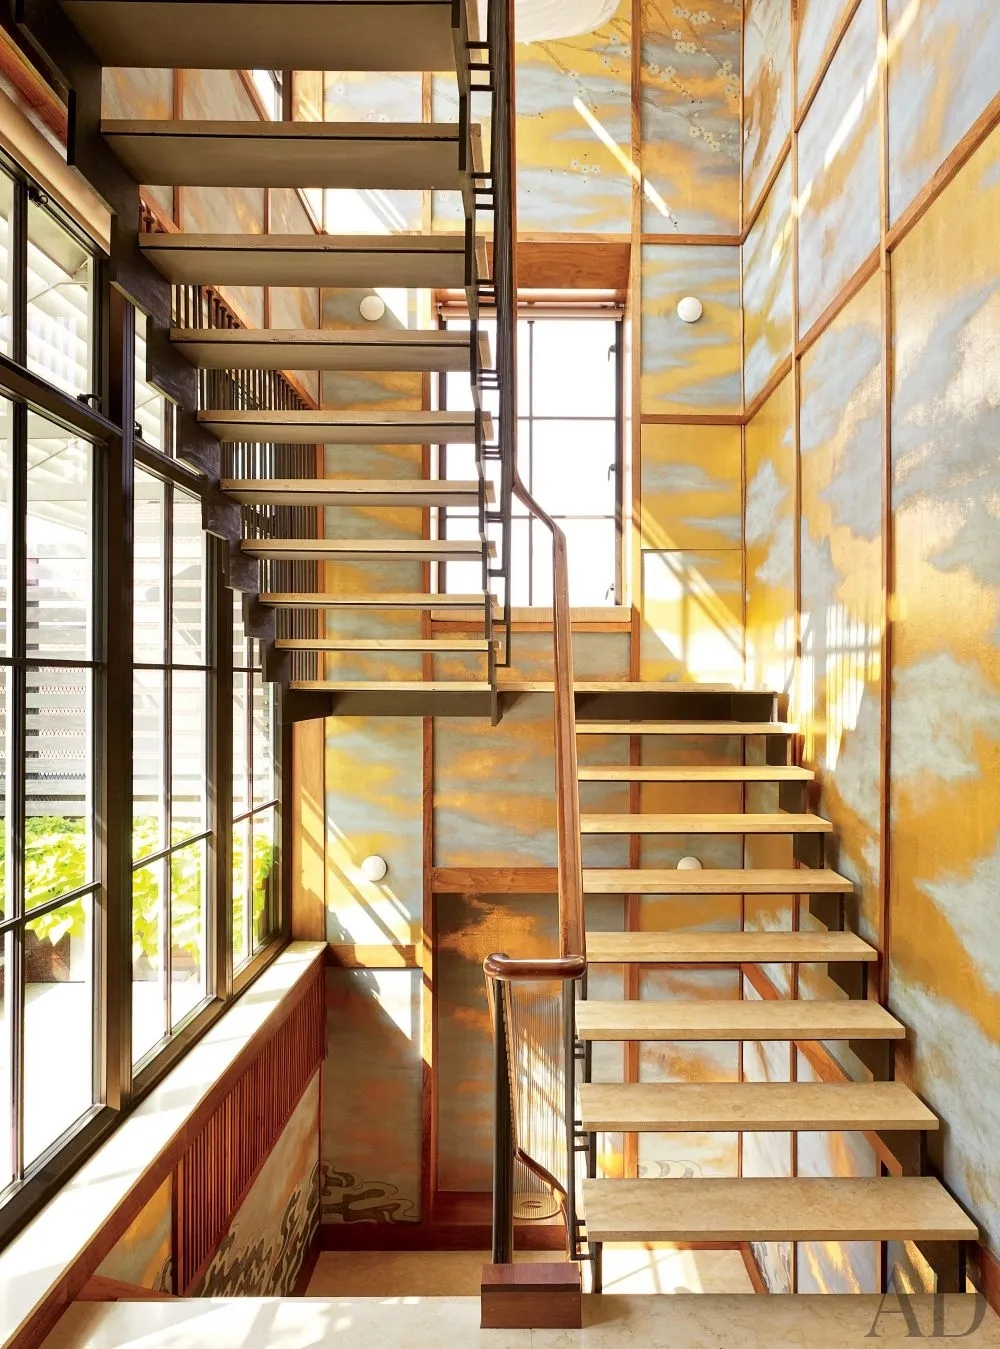 Types Of Stairs Explained Architectural Digest | Staircase Outside House Design | Curved | Modern | Cool | Residential | Up Balcony